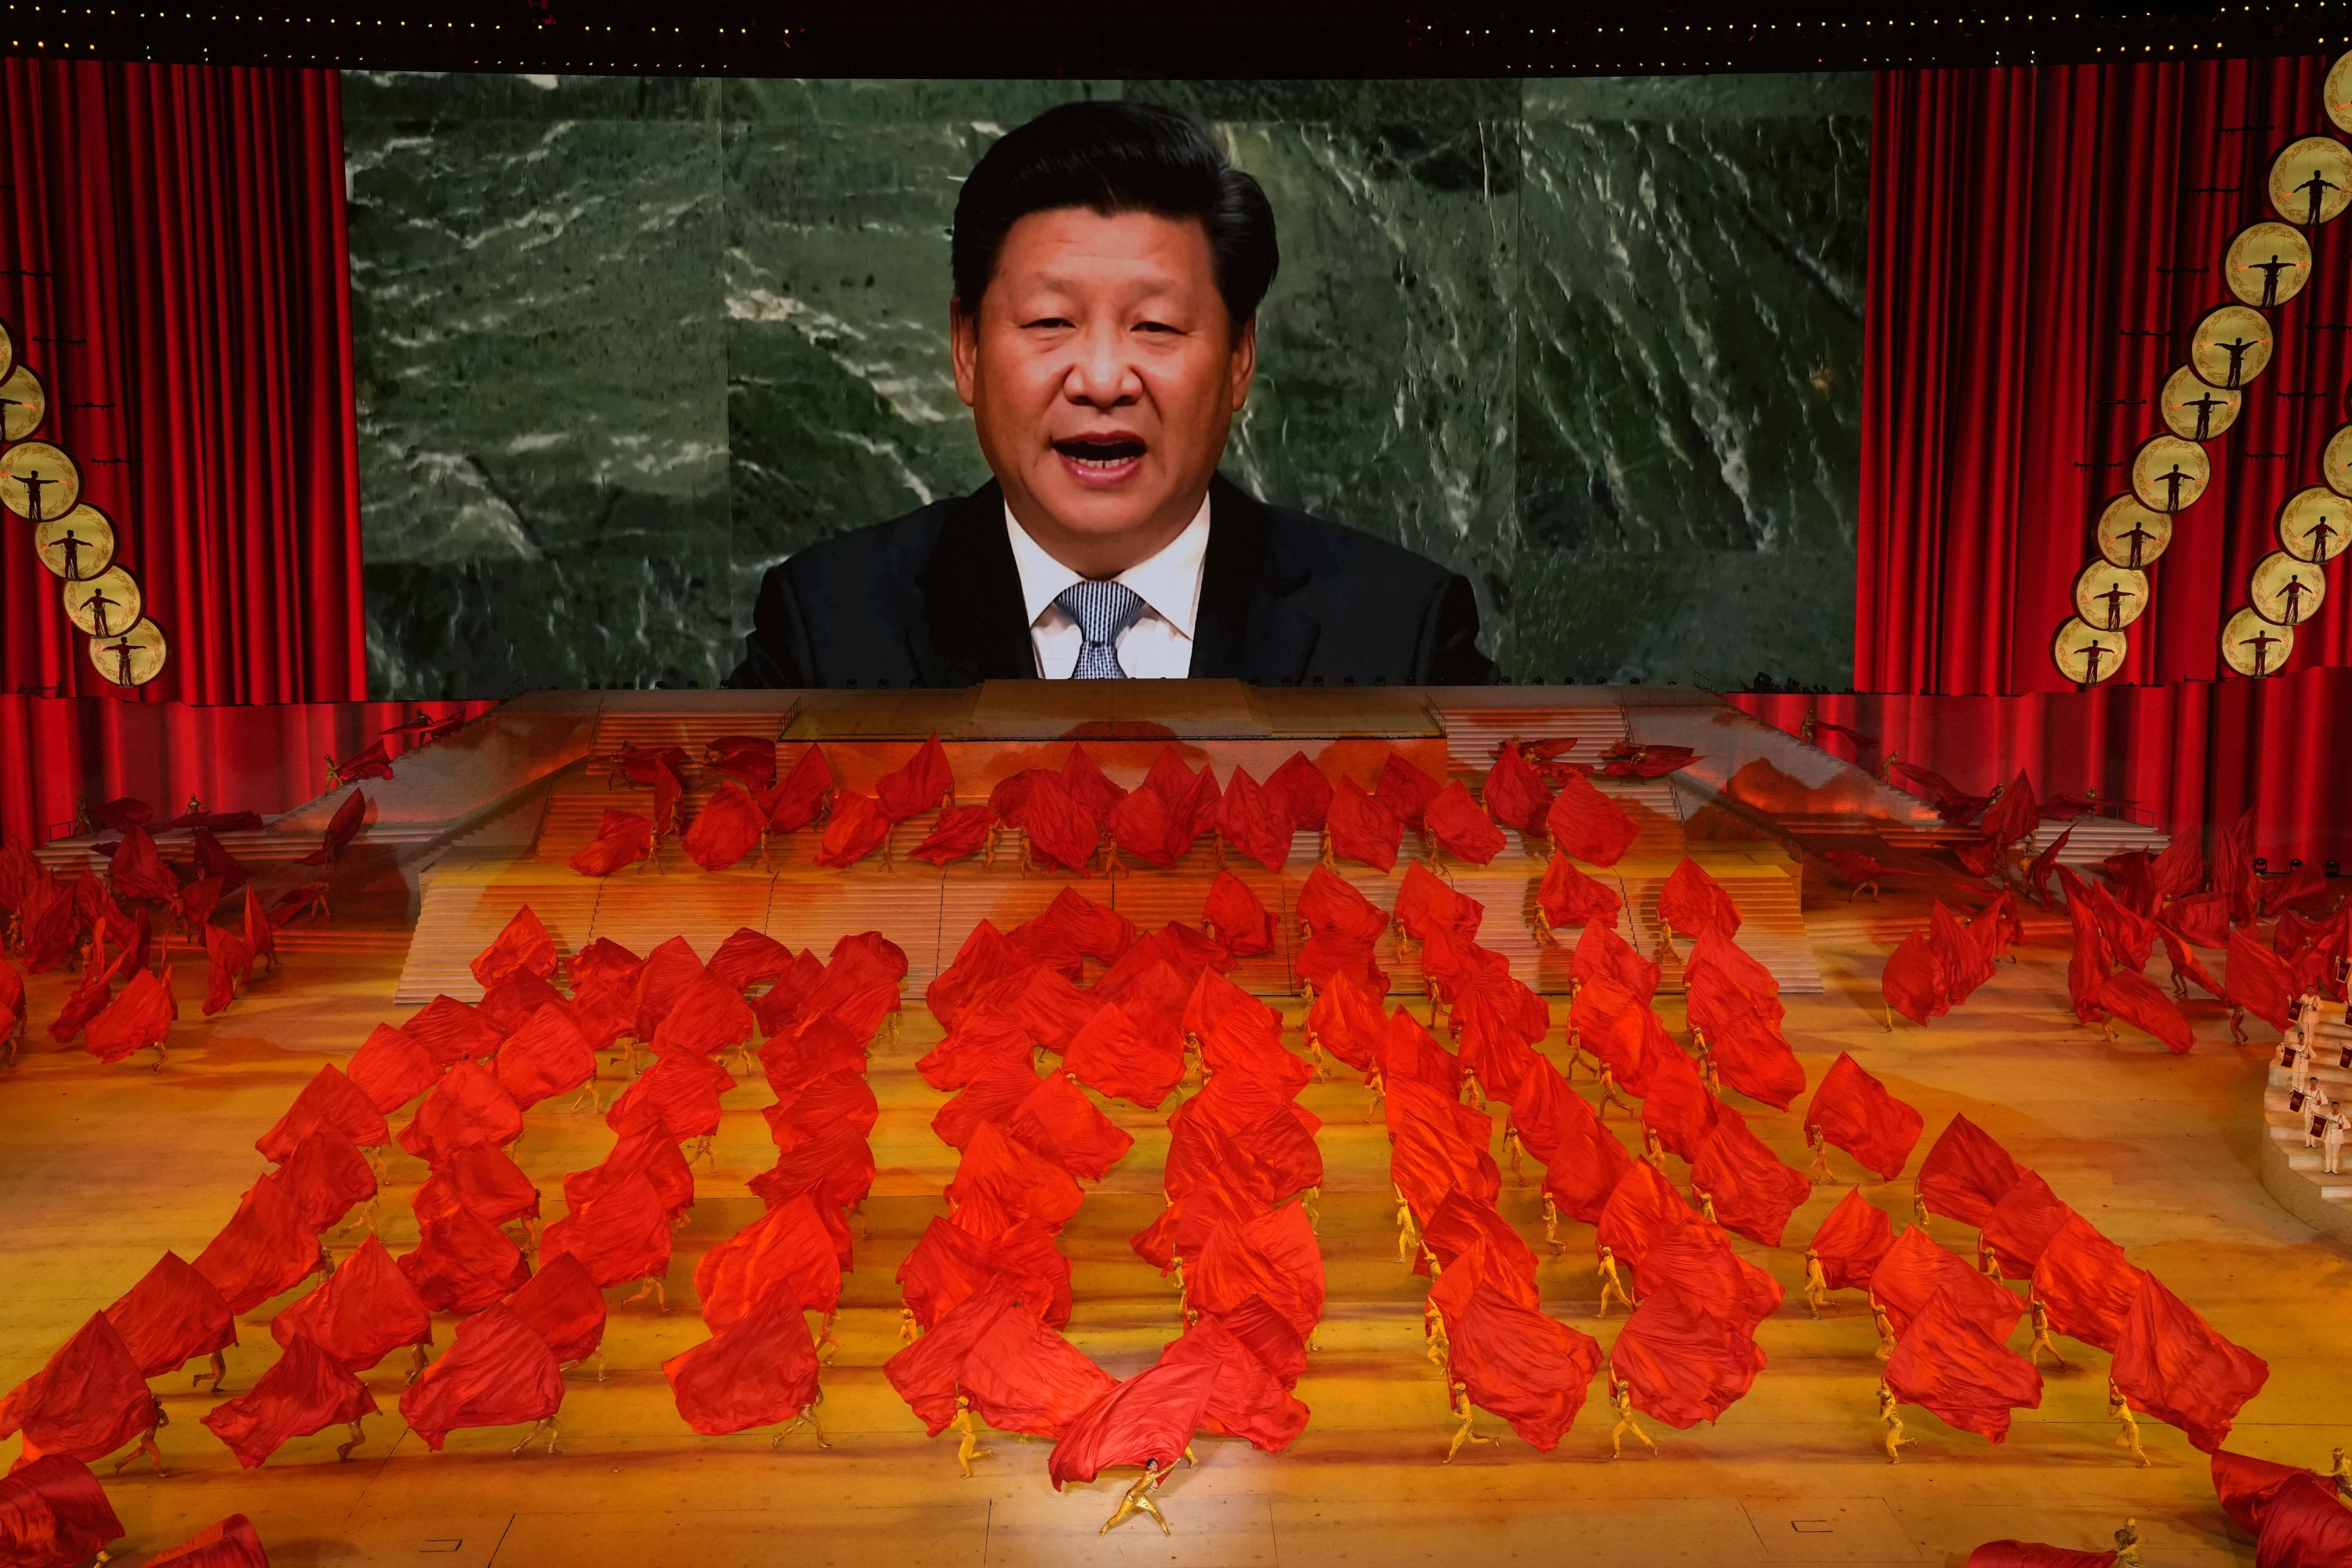 Chinese President Xi Jinping is displayed on a screen as performers dance at a gala ahead of the 100th anniversary of the founding of the Chinese Communist Party in Beijing, China on June 28, 2021. (AP Photo)